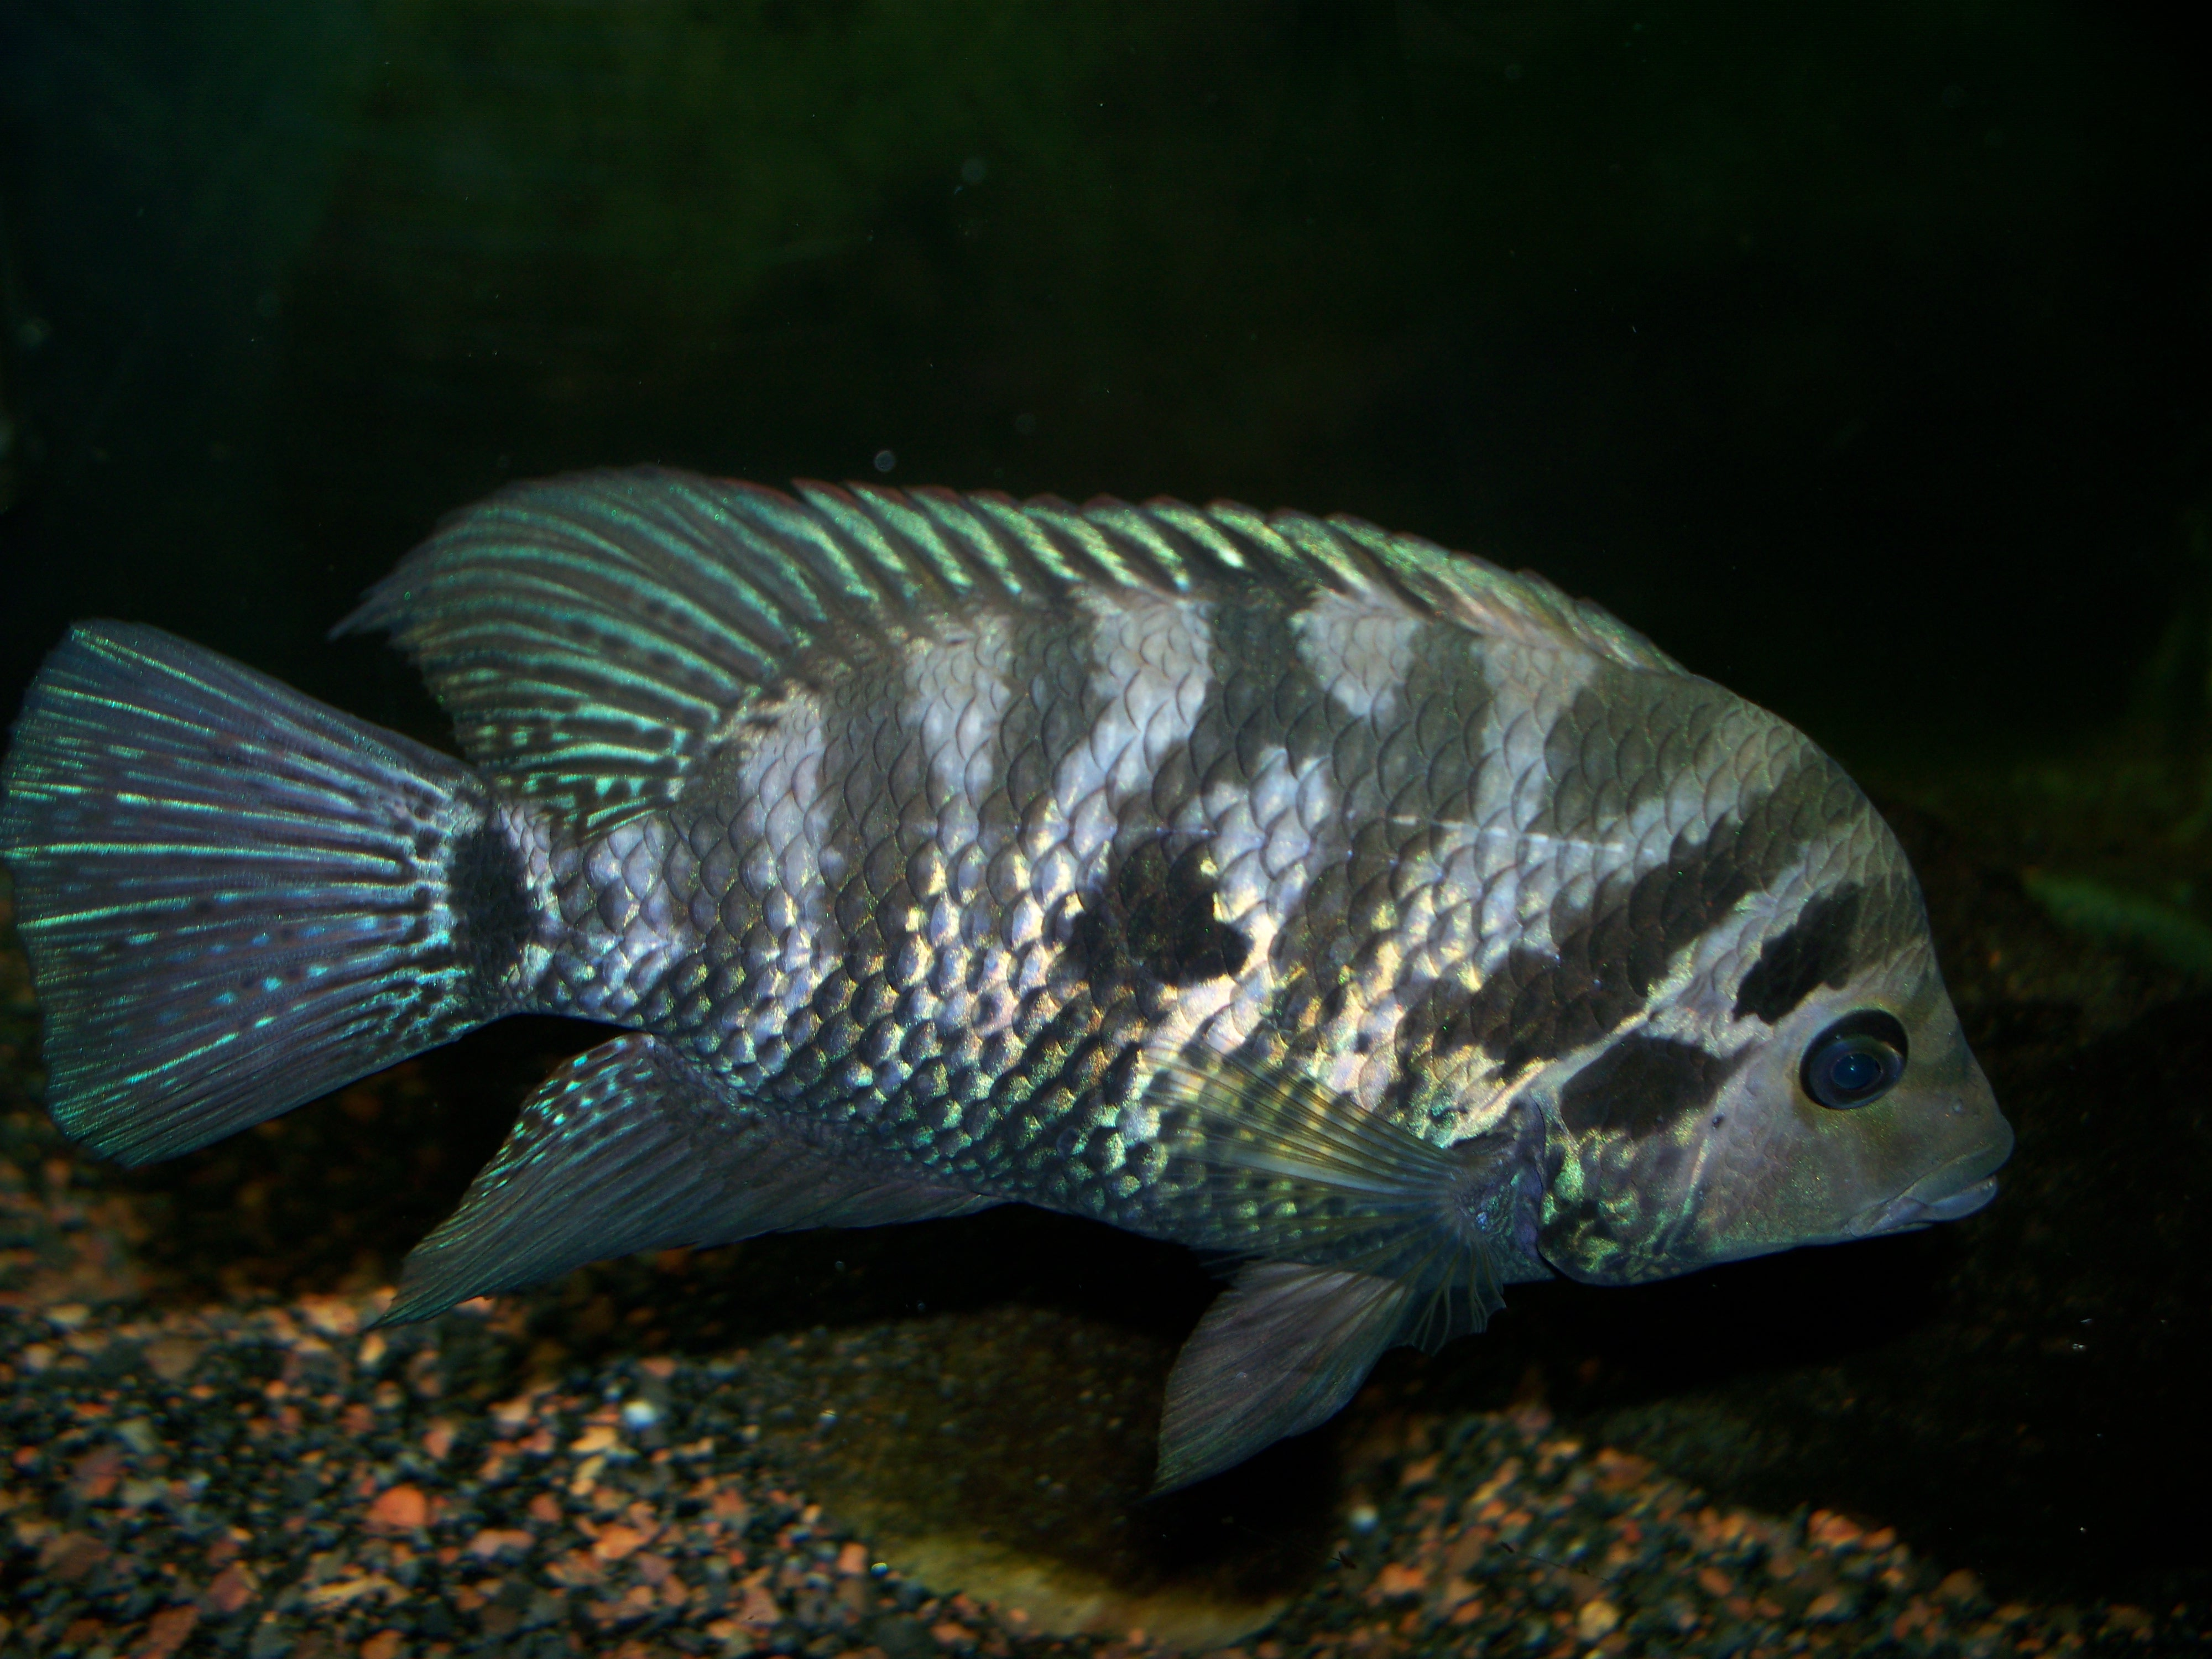 Oscar tank 10 furthermore 301373 Could John Mcenroe Be Prince Harry S Real Father further Red Tiger Oscar 1 additionally Tangerine Tiger 41 in addition African Cichlid Tank Driftwood. on oscar cichlid forum